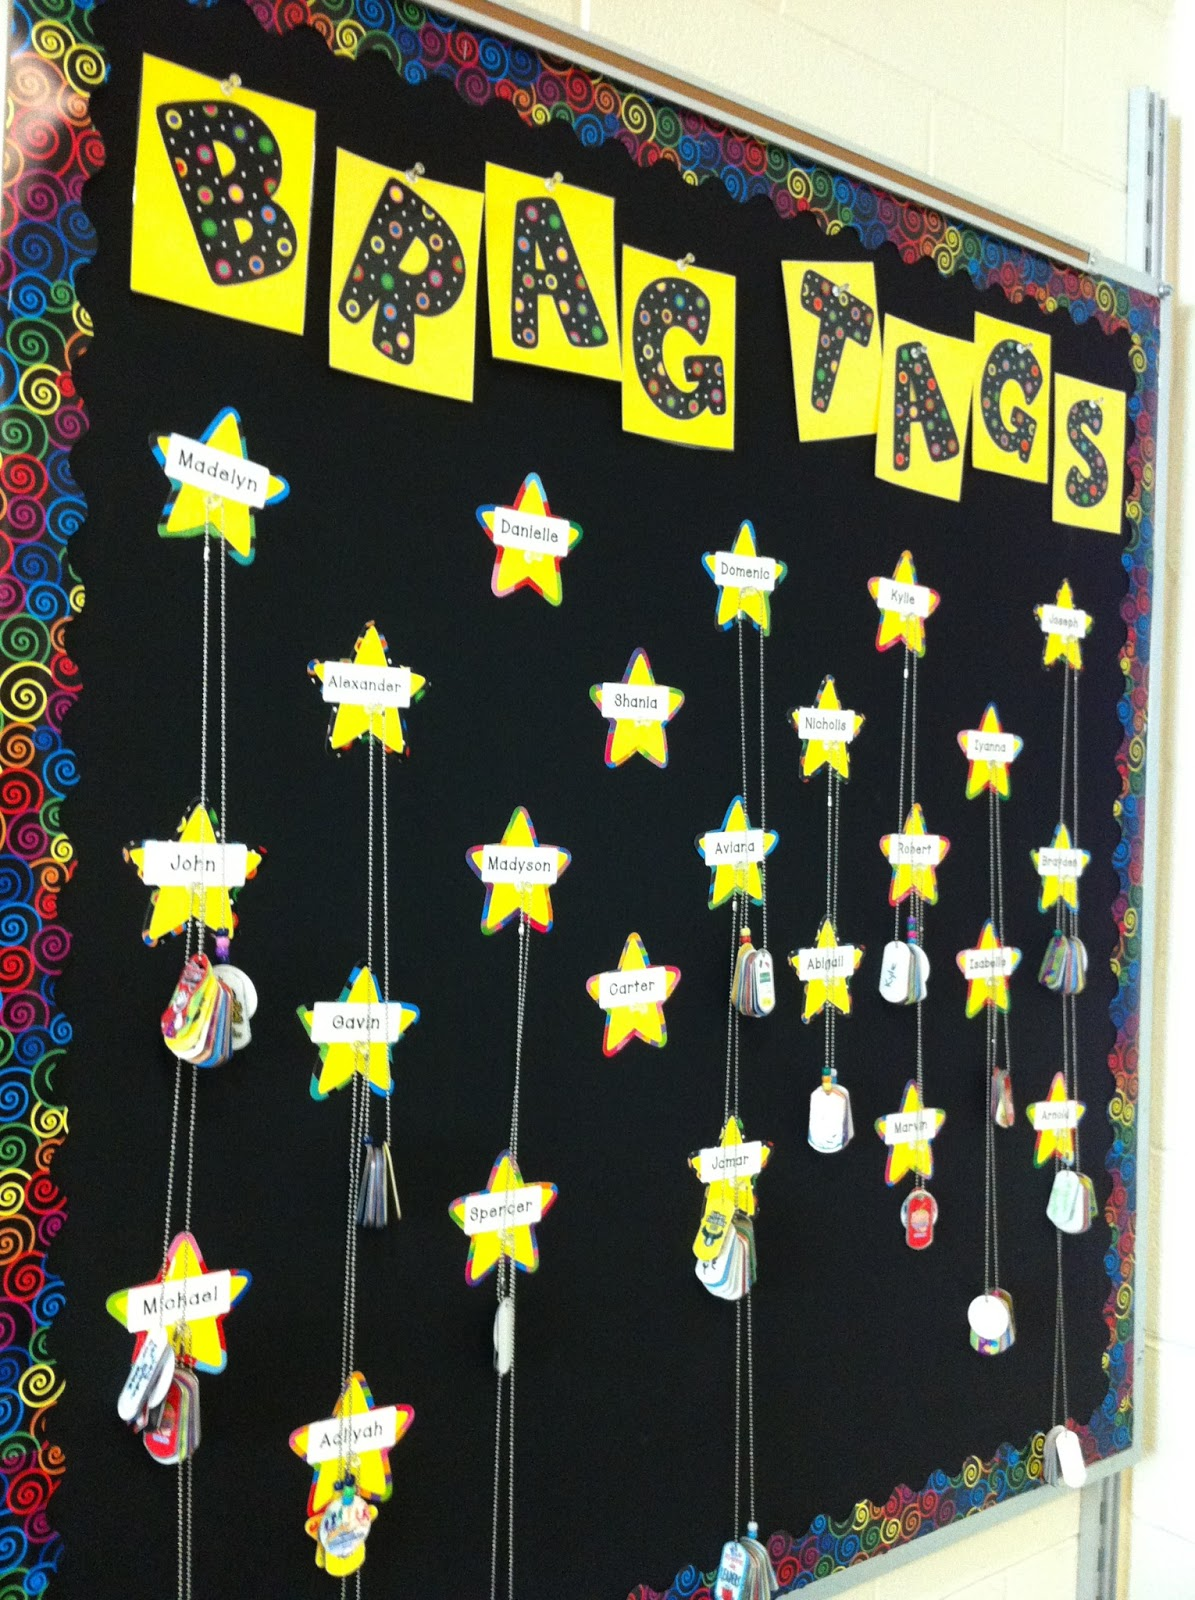 Classroom Decor Bulletin Board Ideas : Creative lesson cafe classroom decor ideas